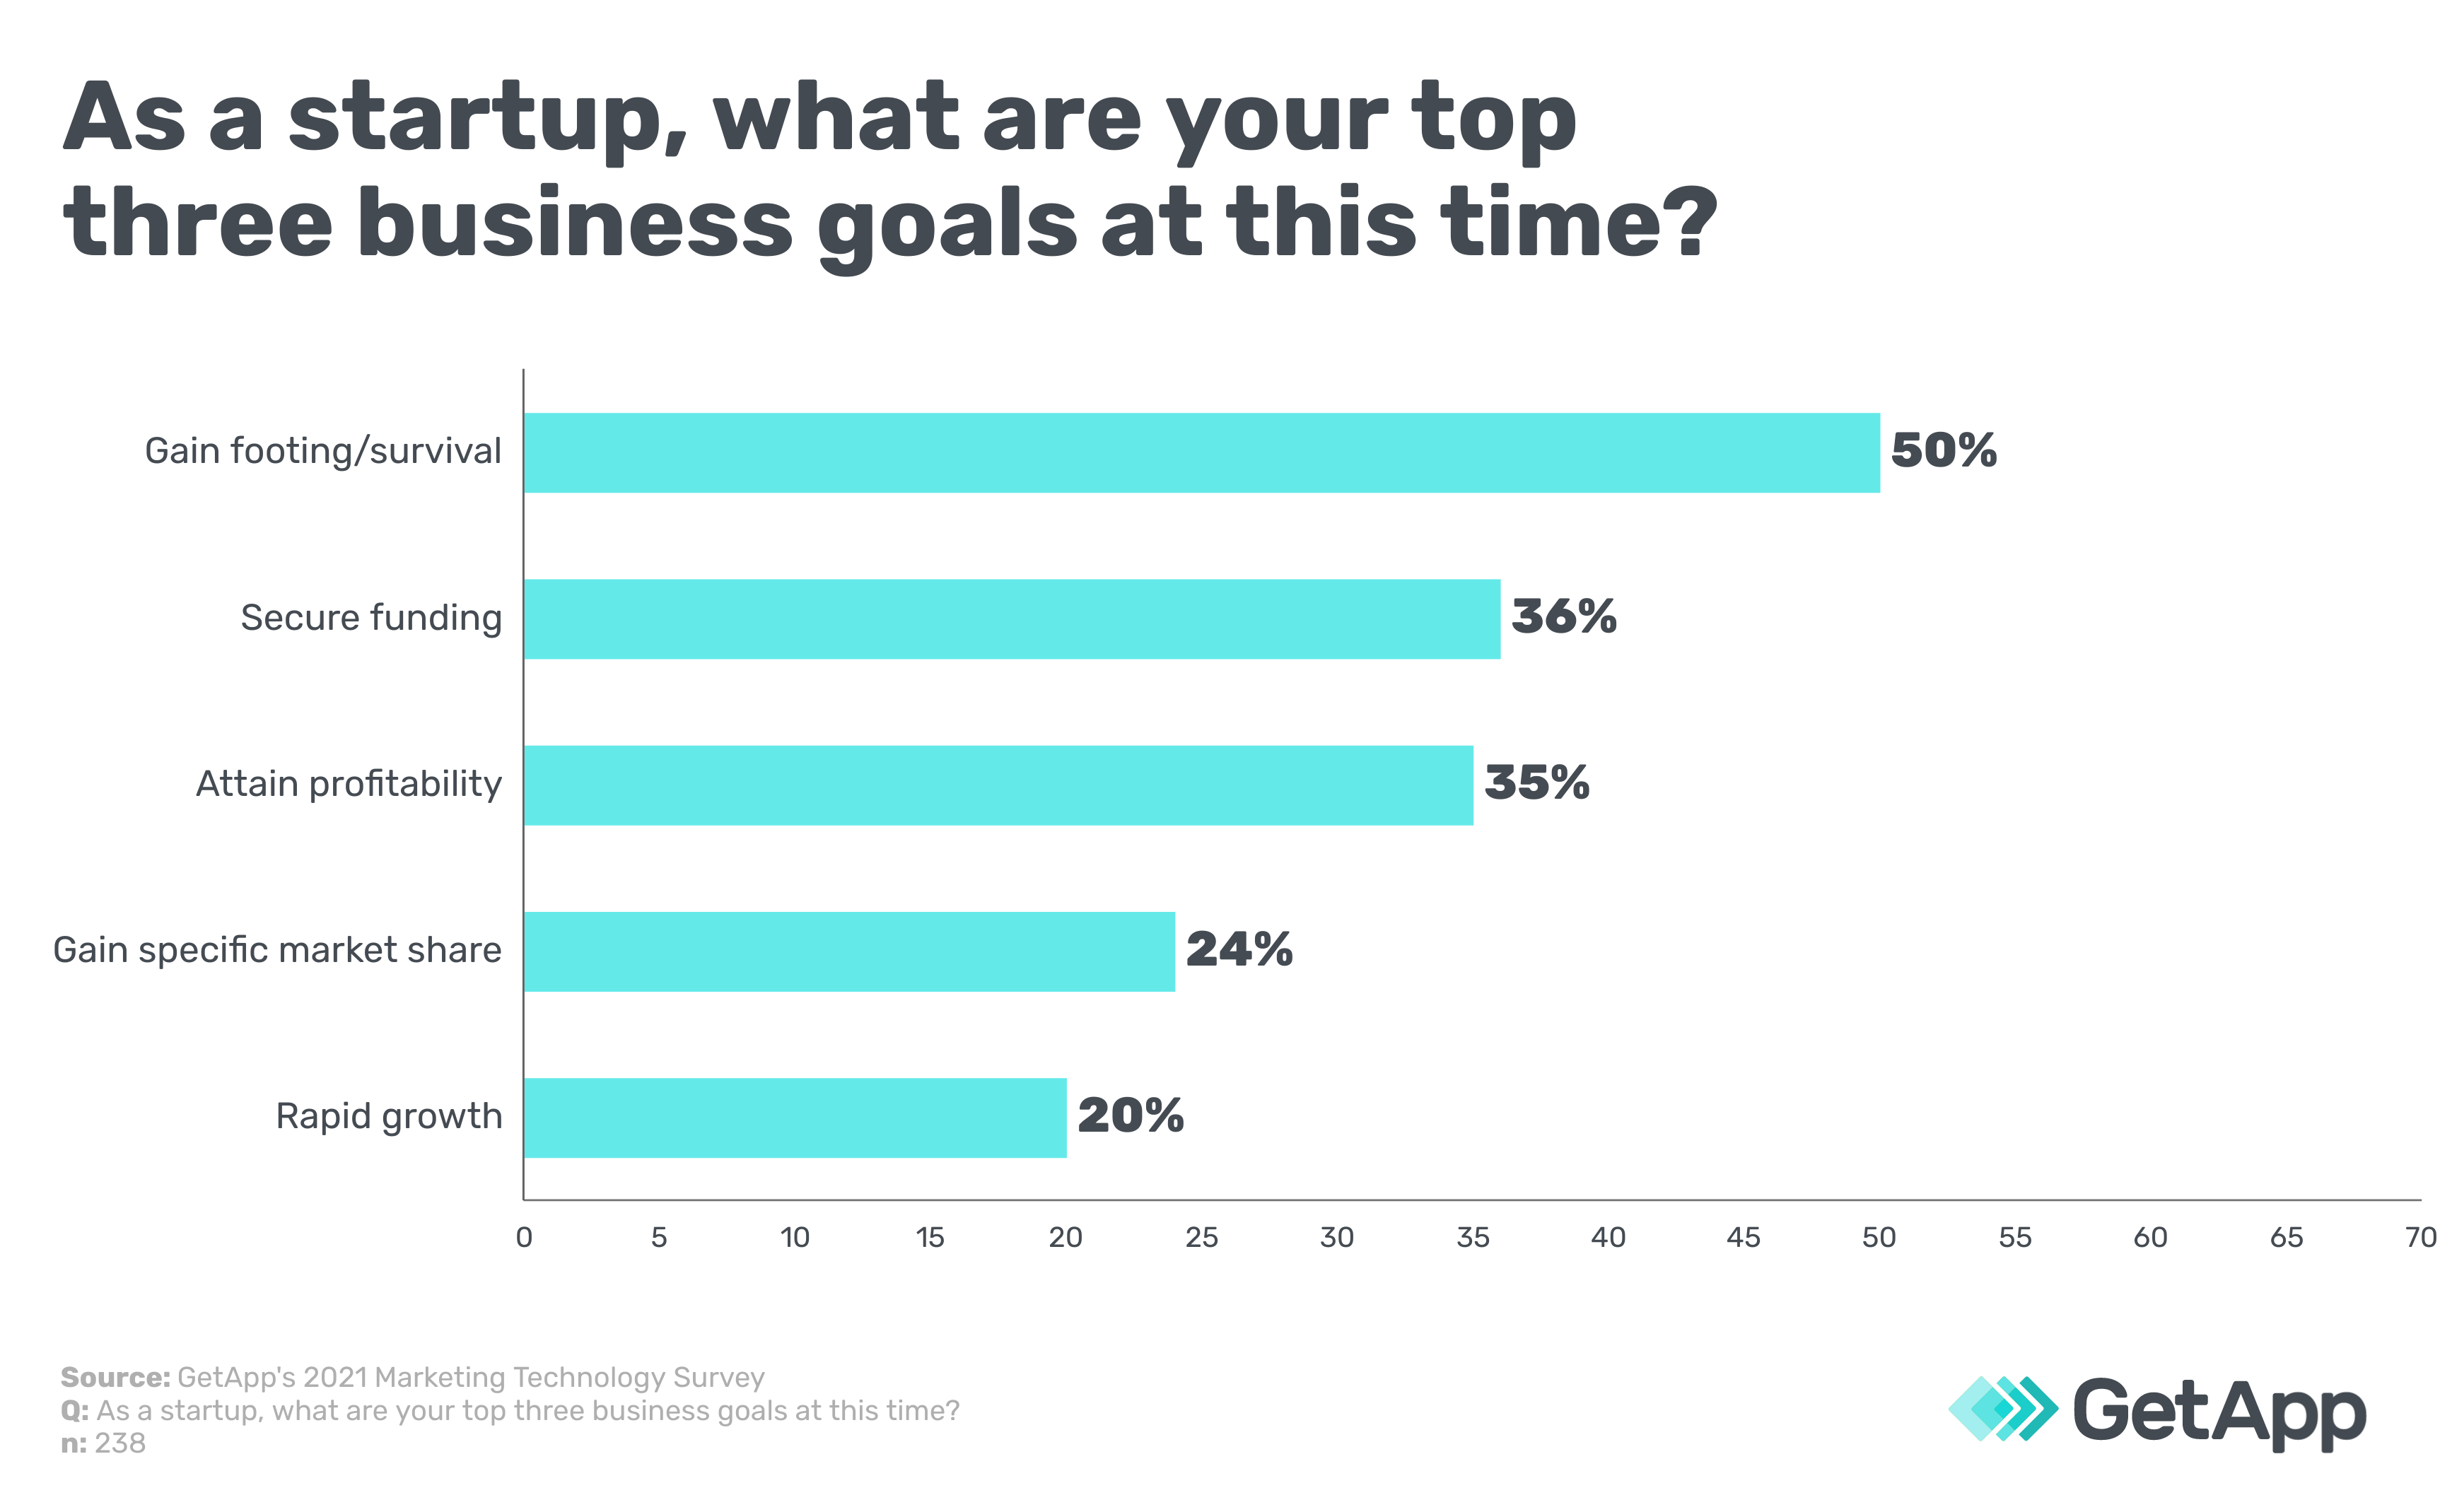 As a startup, what are your top three business goals at this time?